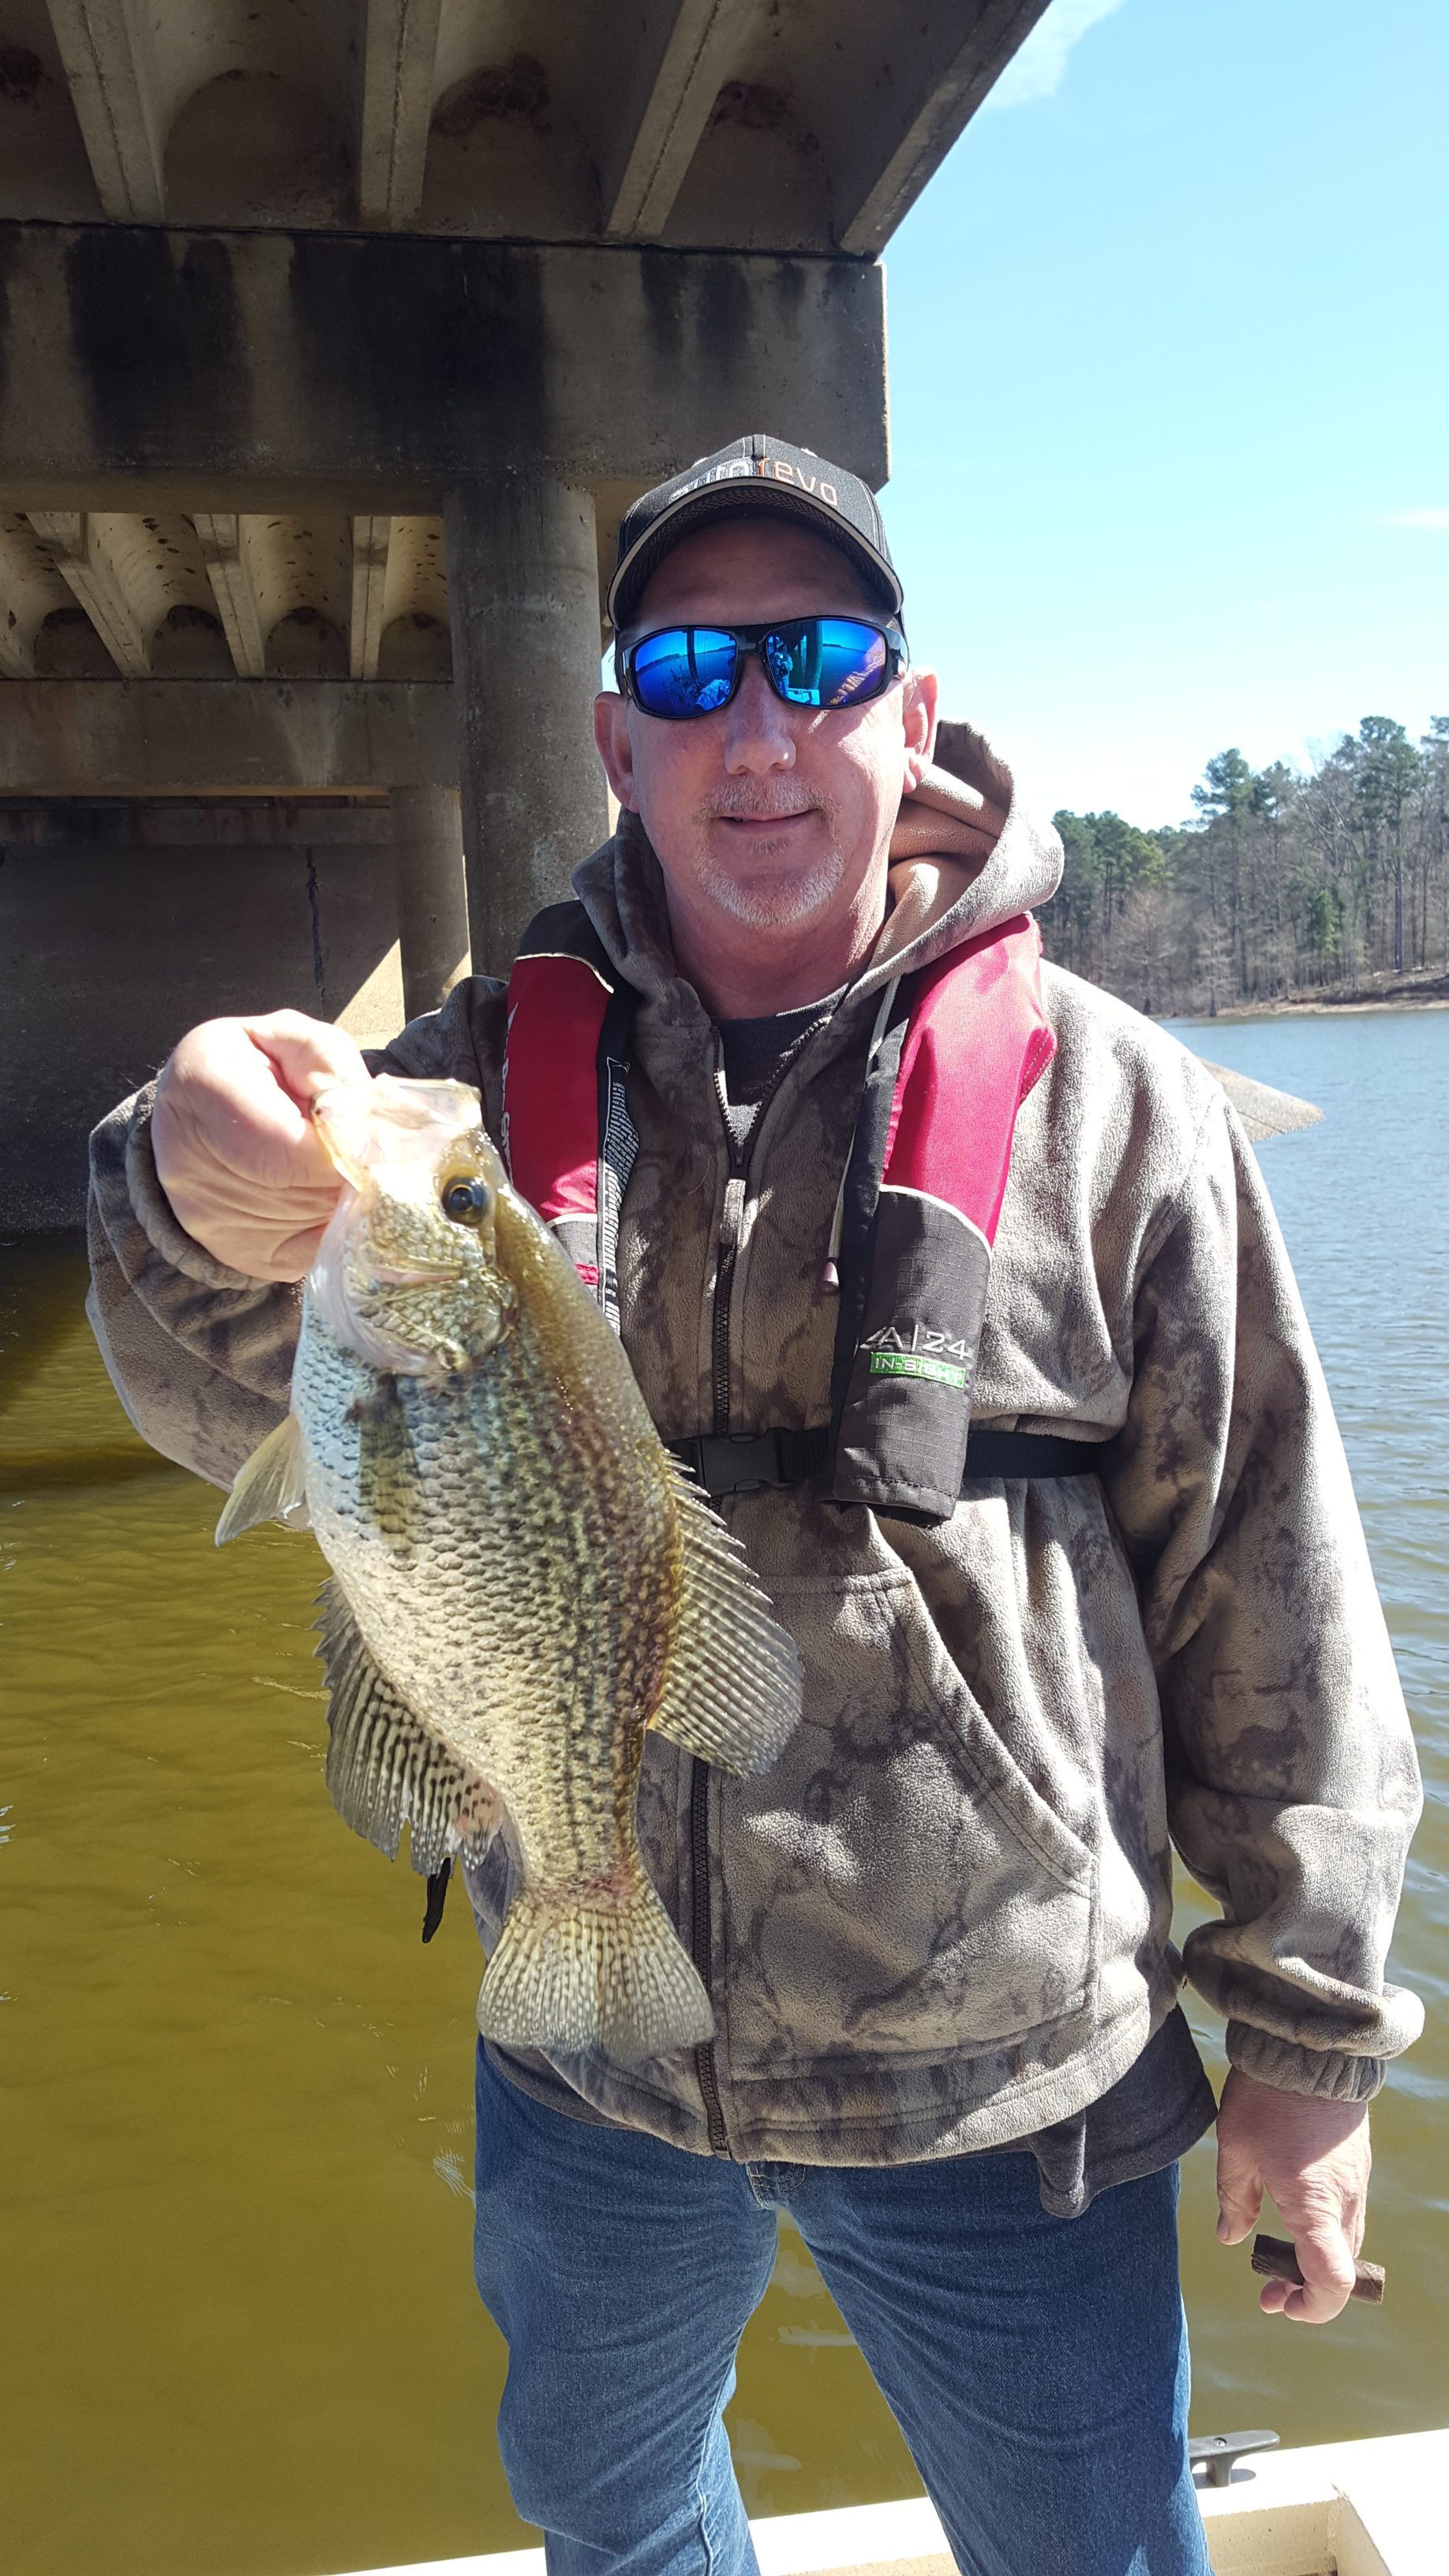 Pine cove cabin vacation rental on lake o the pines texas for Lake o the pines fishing report